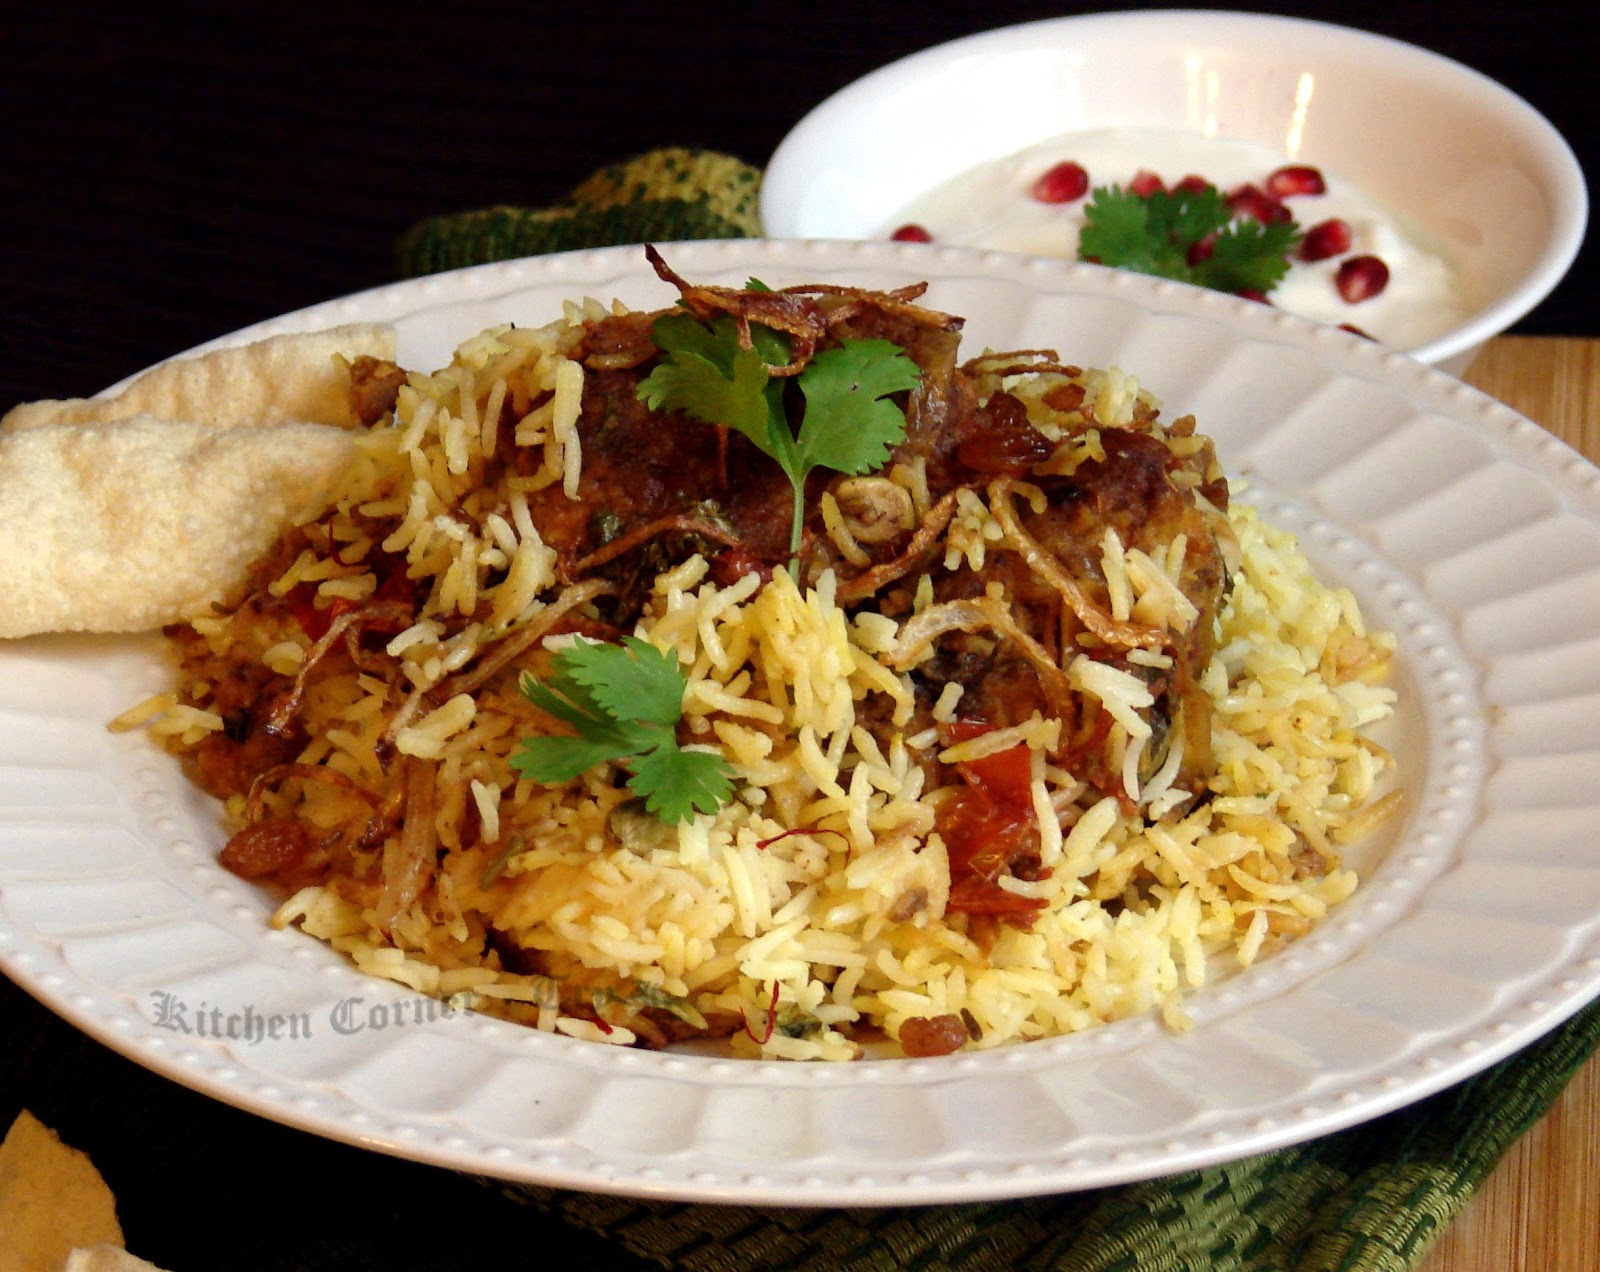 Kitchen Corner-Try It: Fried Chicken Biryani